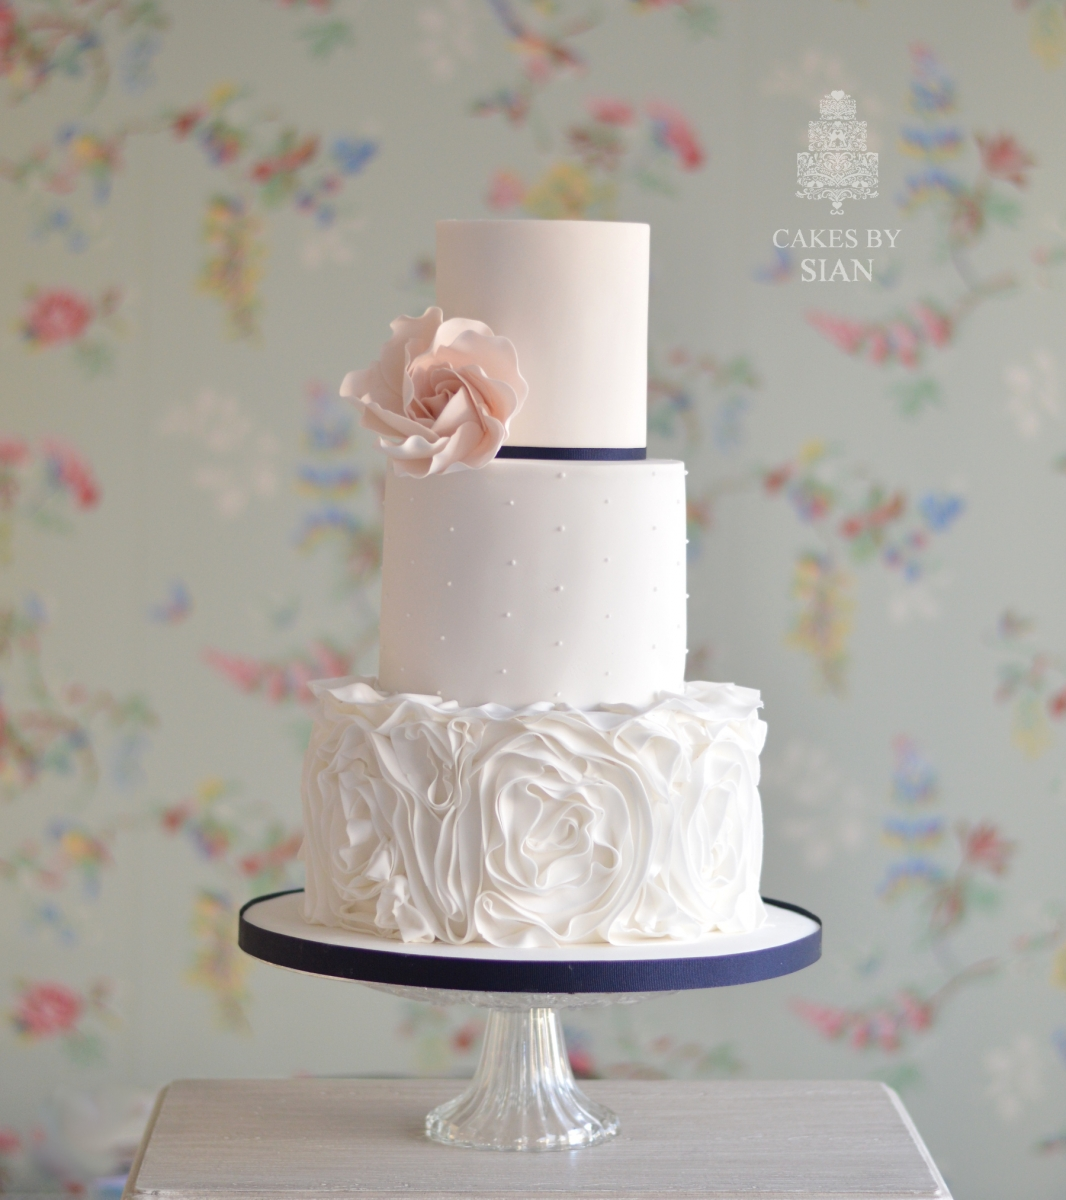 Wedding Cakes Cakes By Sian